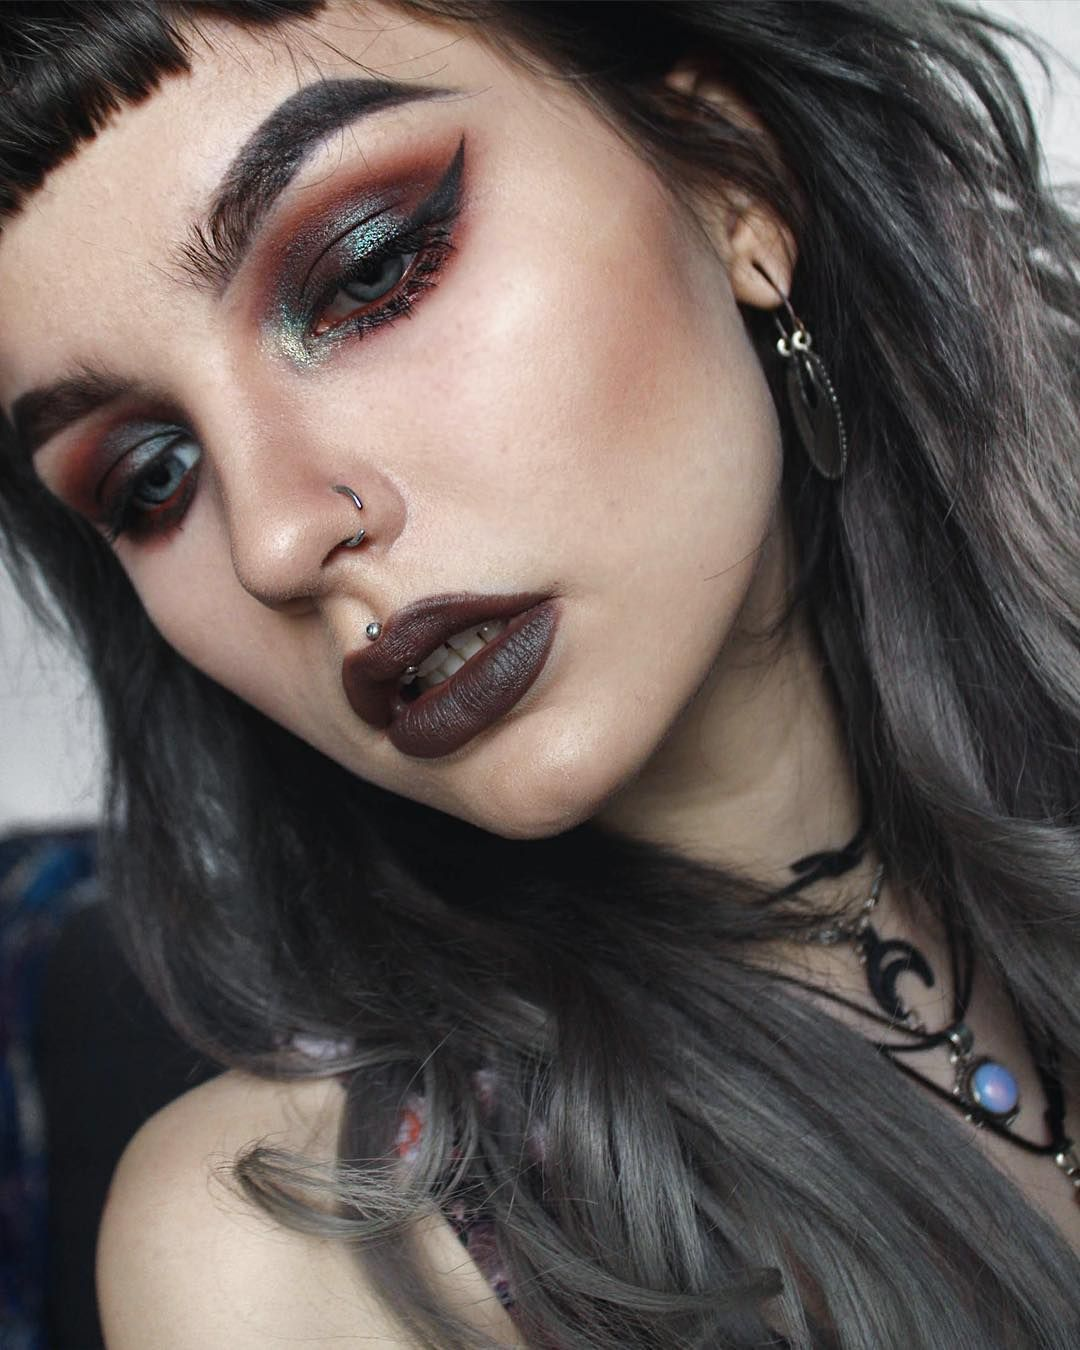 Pin By Cammie Turner On Makeup Pinterest Makeup Makeup Looks